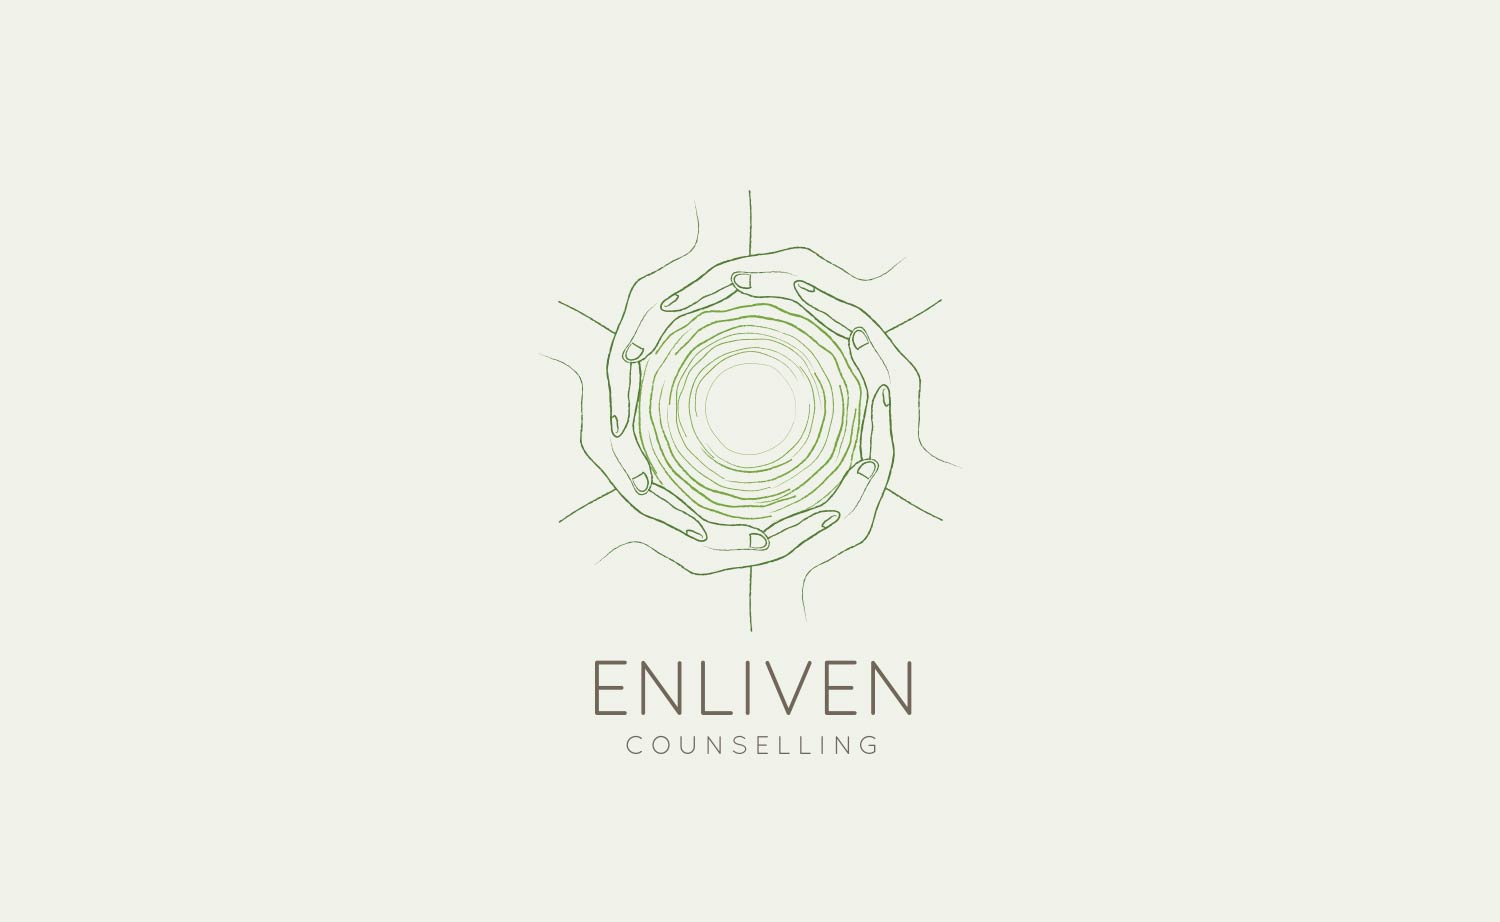 Logo and branding for Enliven Counselling